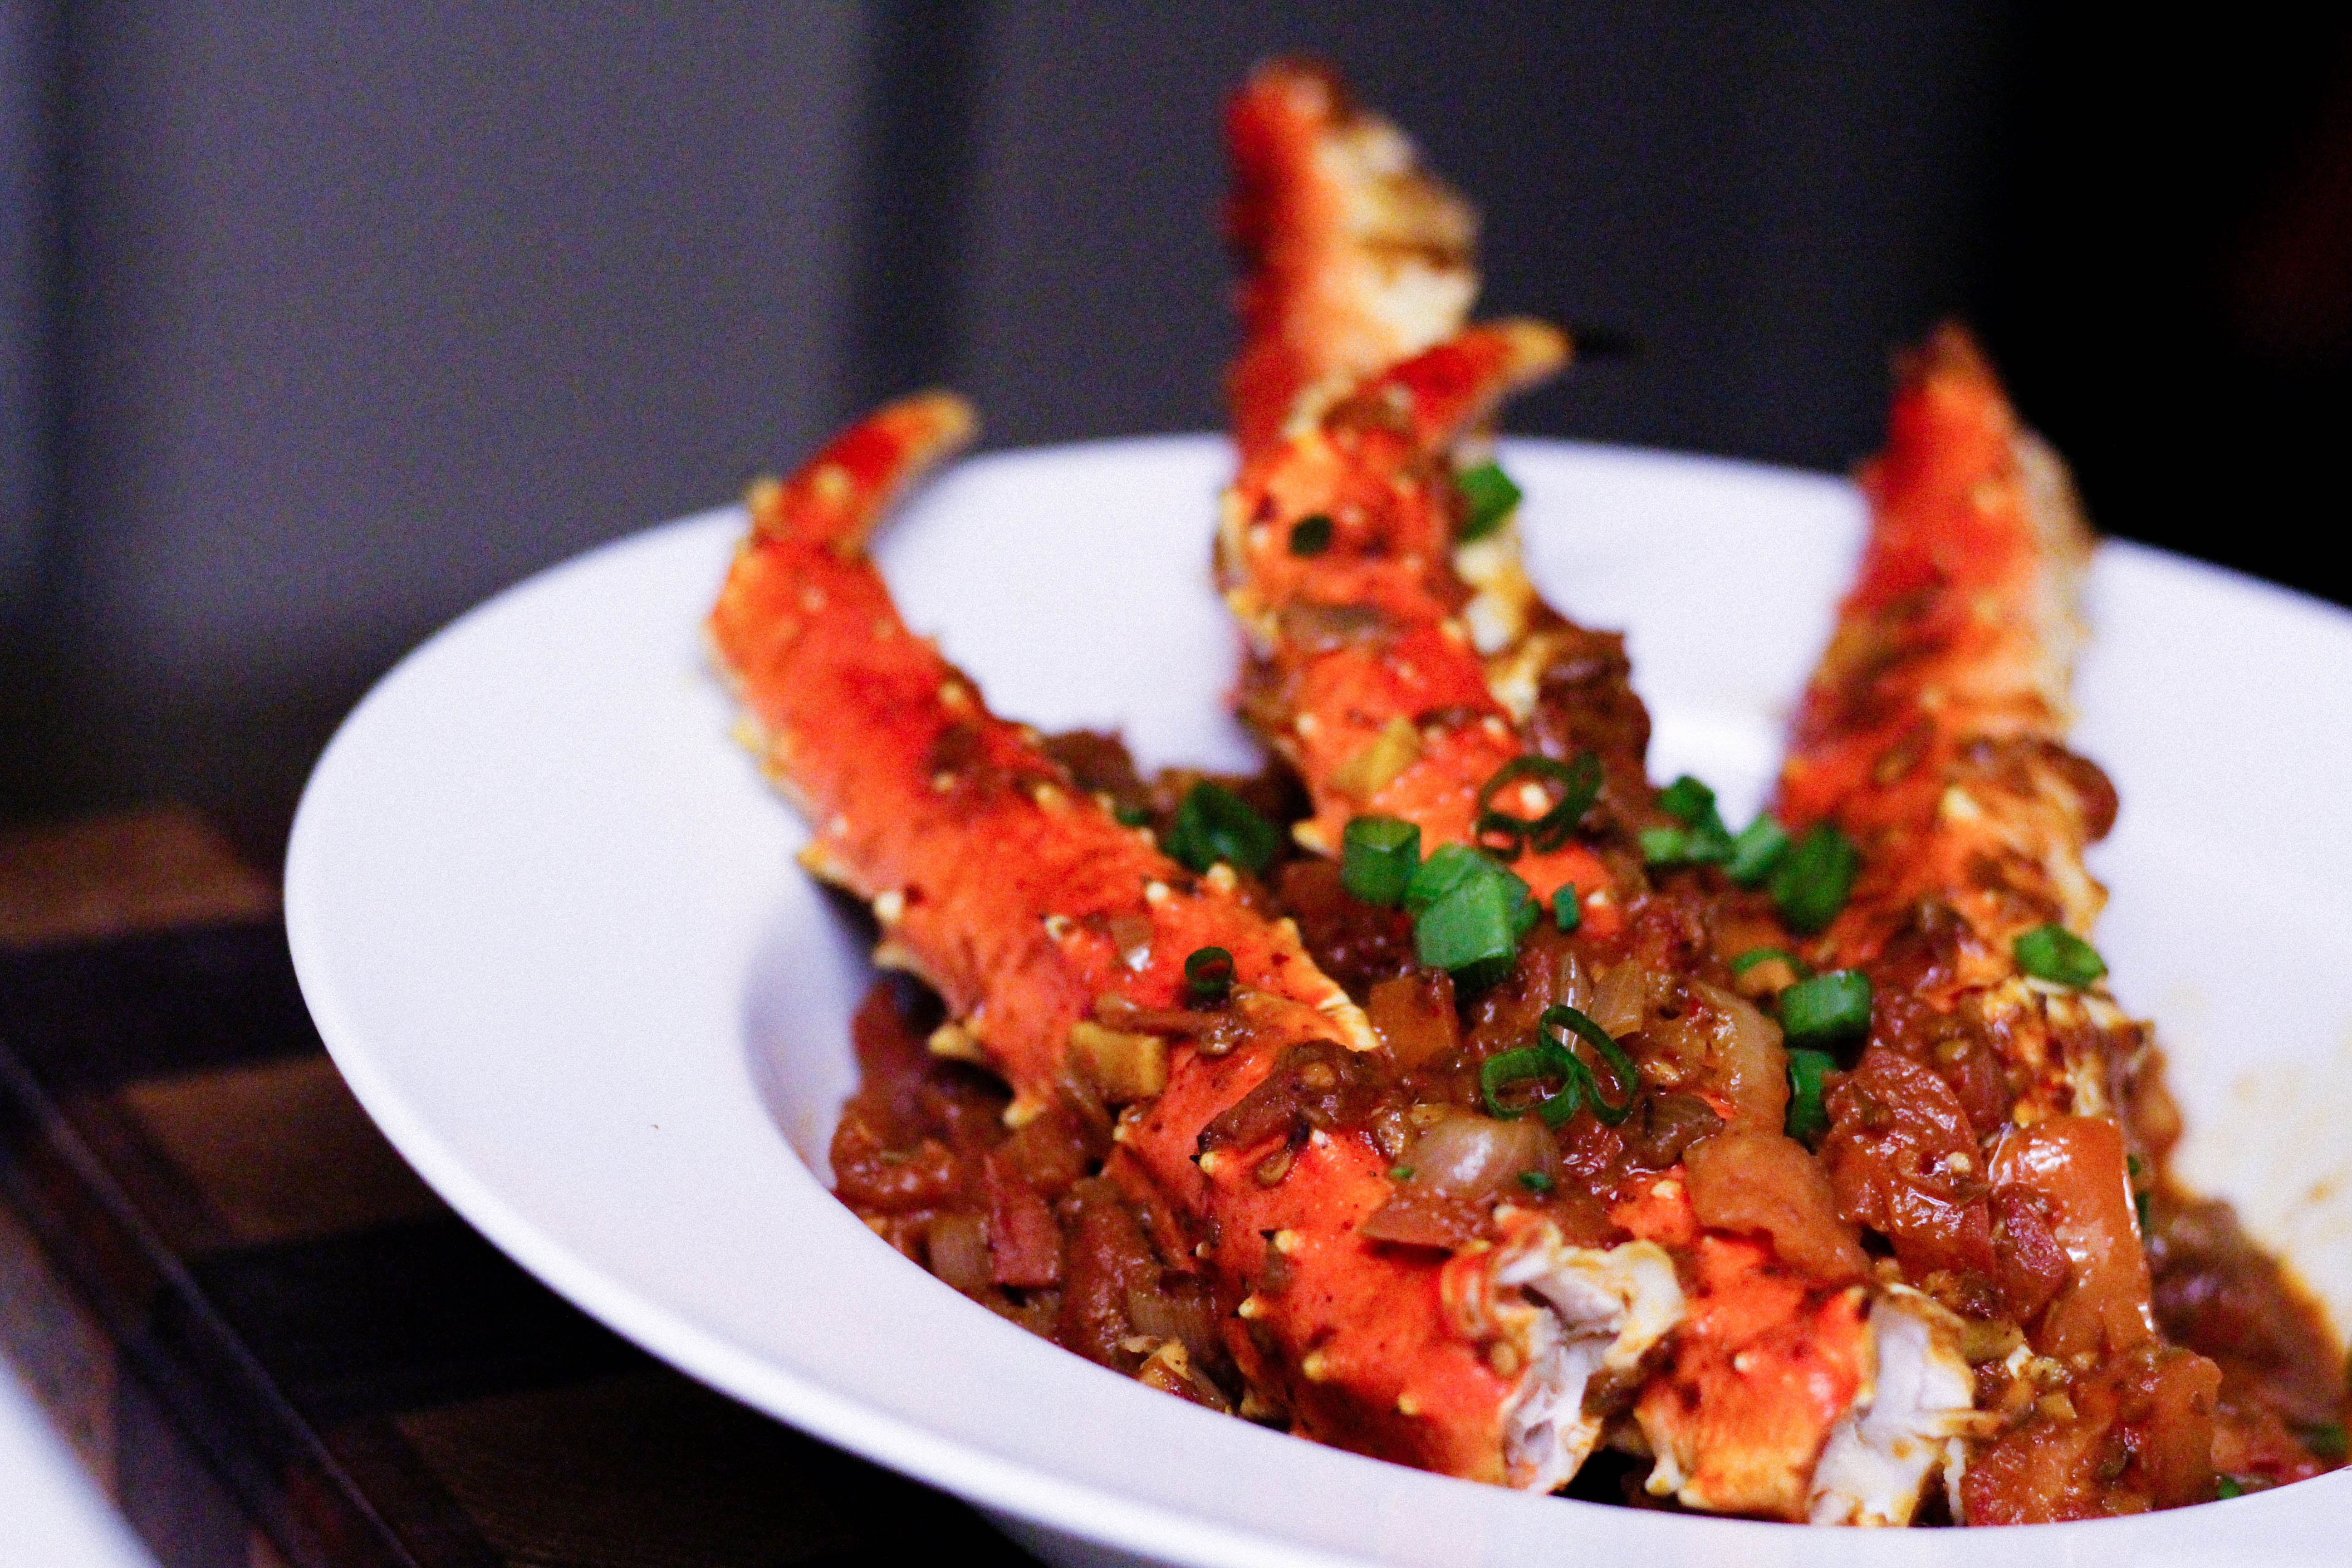 King Crab Legs with Spicy Ghanaian Shito and Tomato Sauce